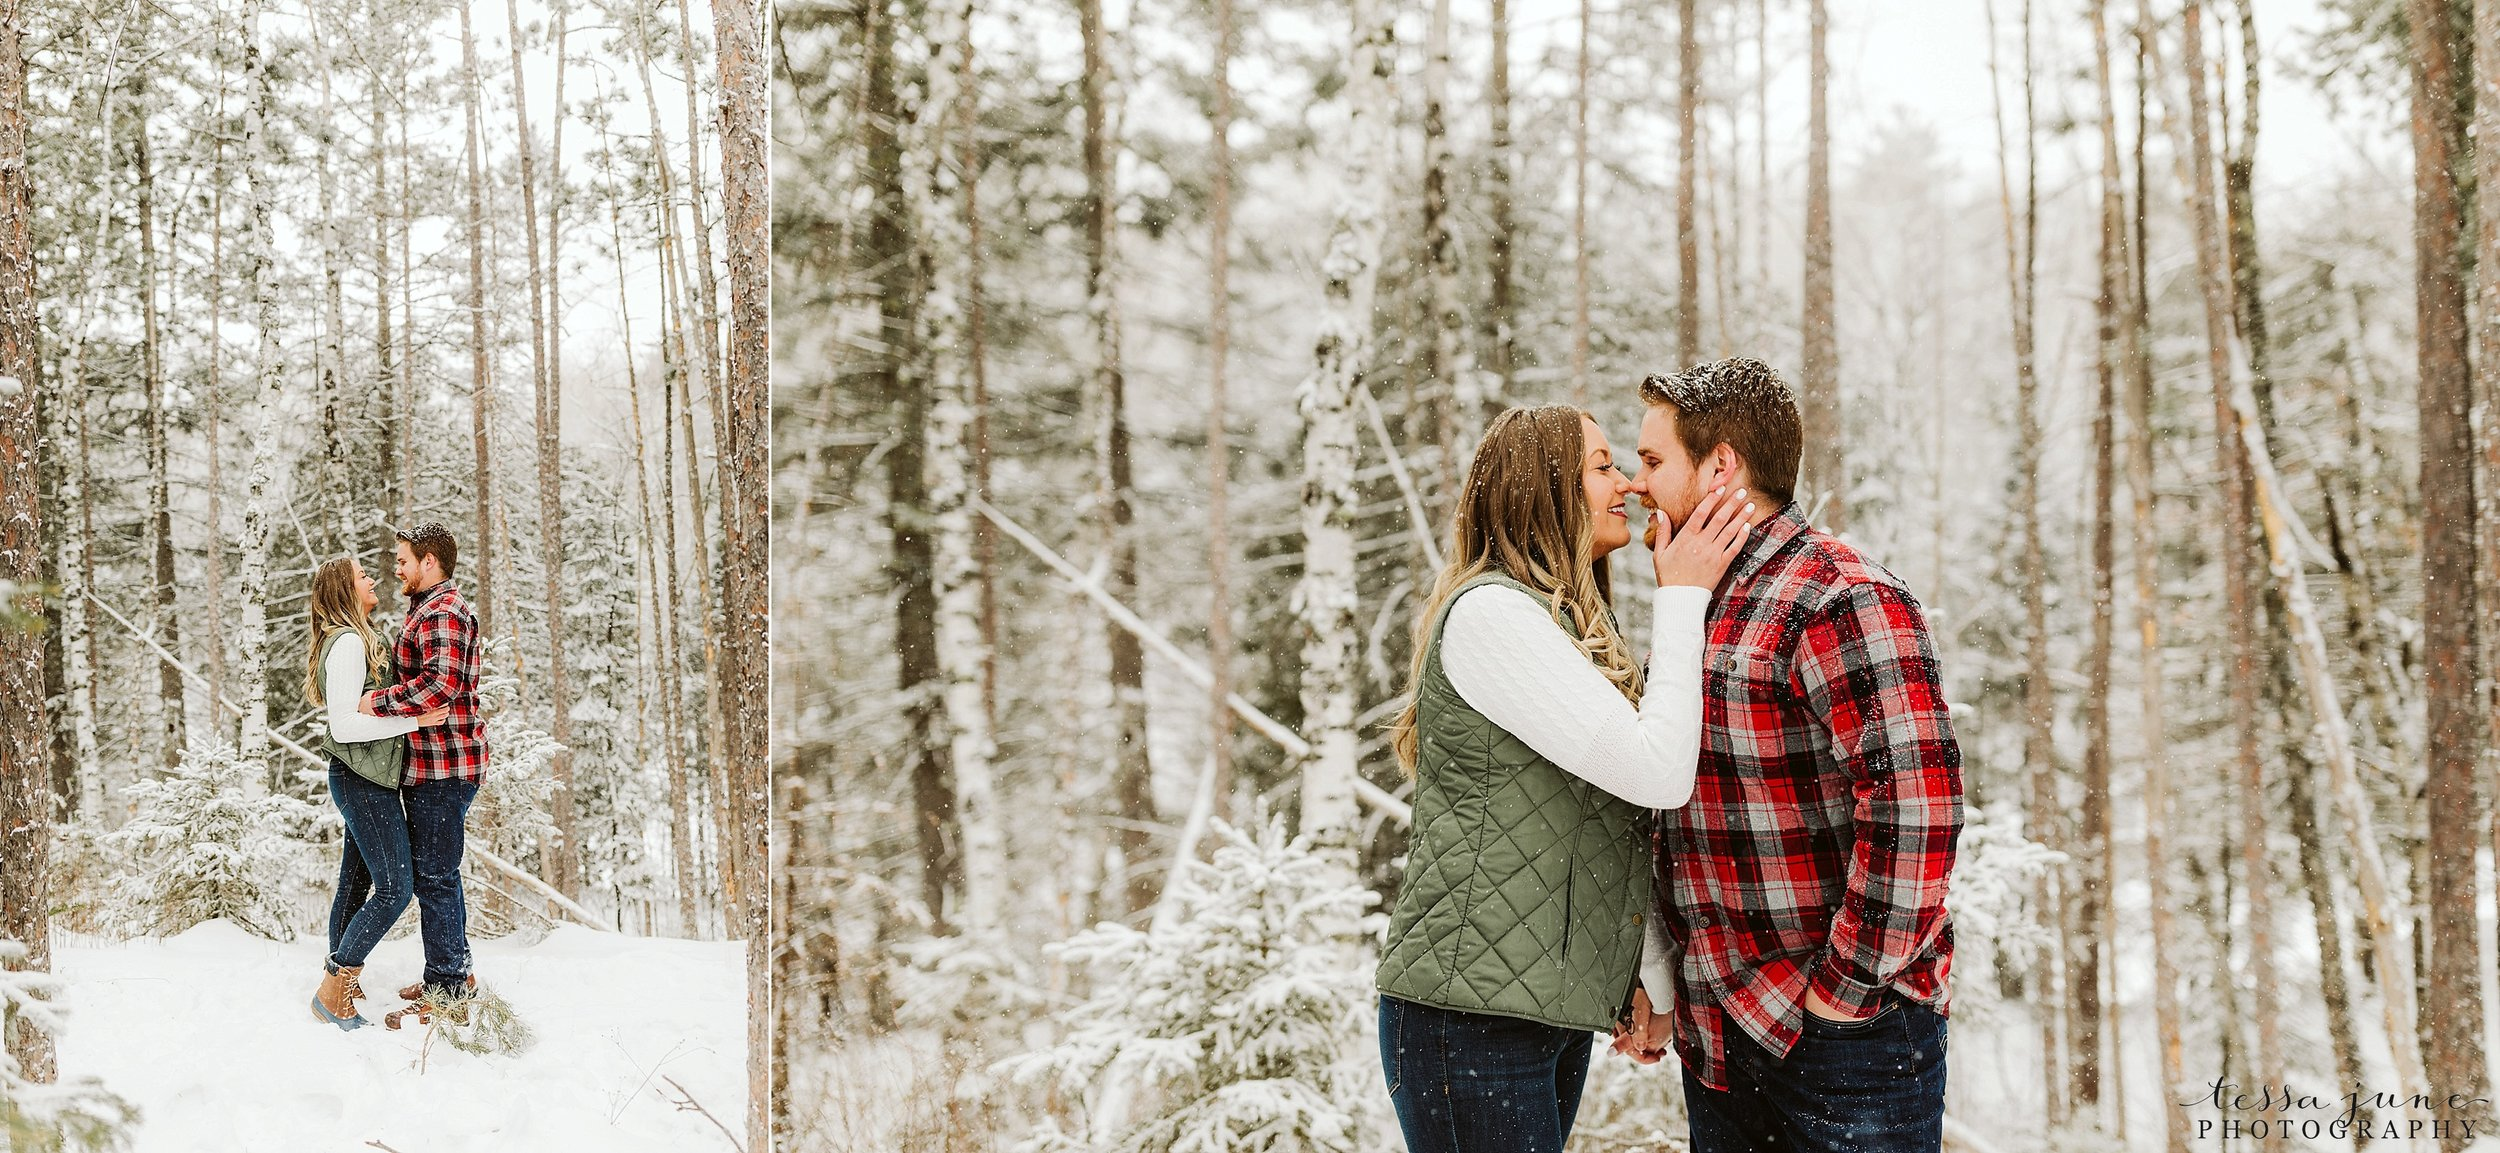 duluth-winter-engagement-forest-photos-during-snow-storm-8.jpg